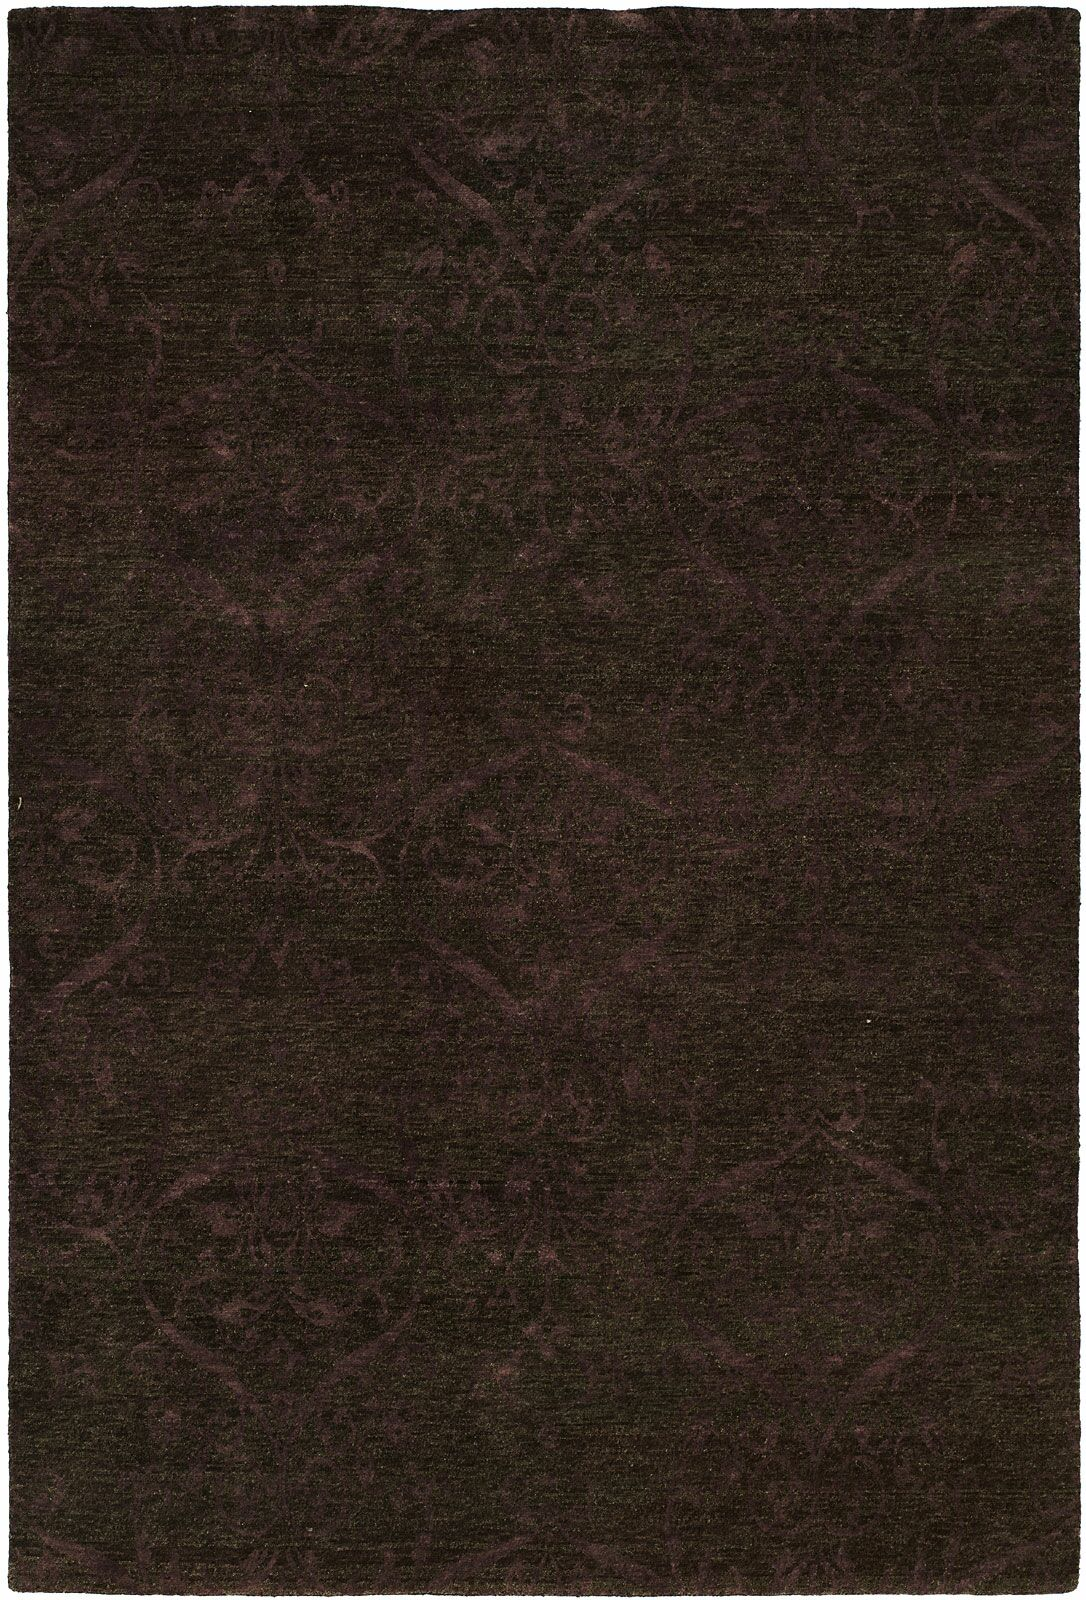 Sihanoukville Hand-Knotted Dark Gray/Purple Area Rug Rug Size: Square 8'